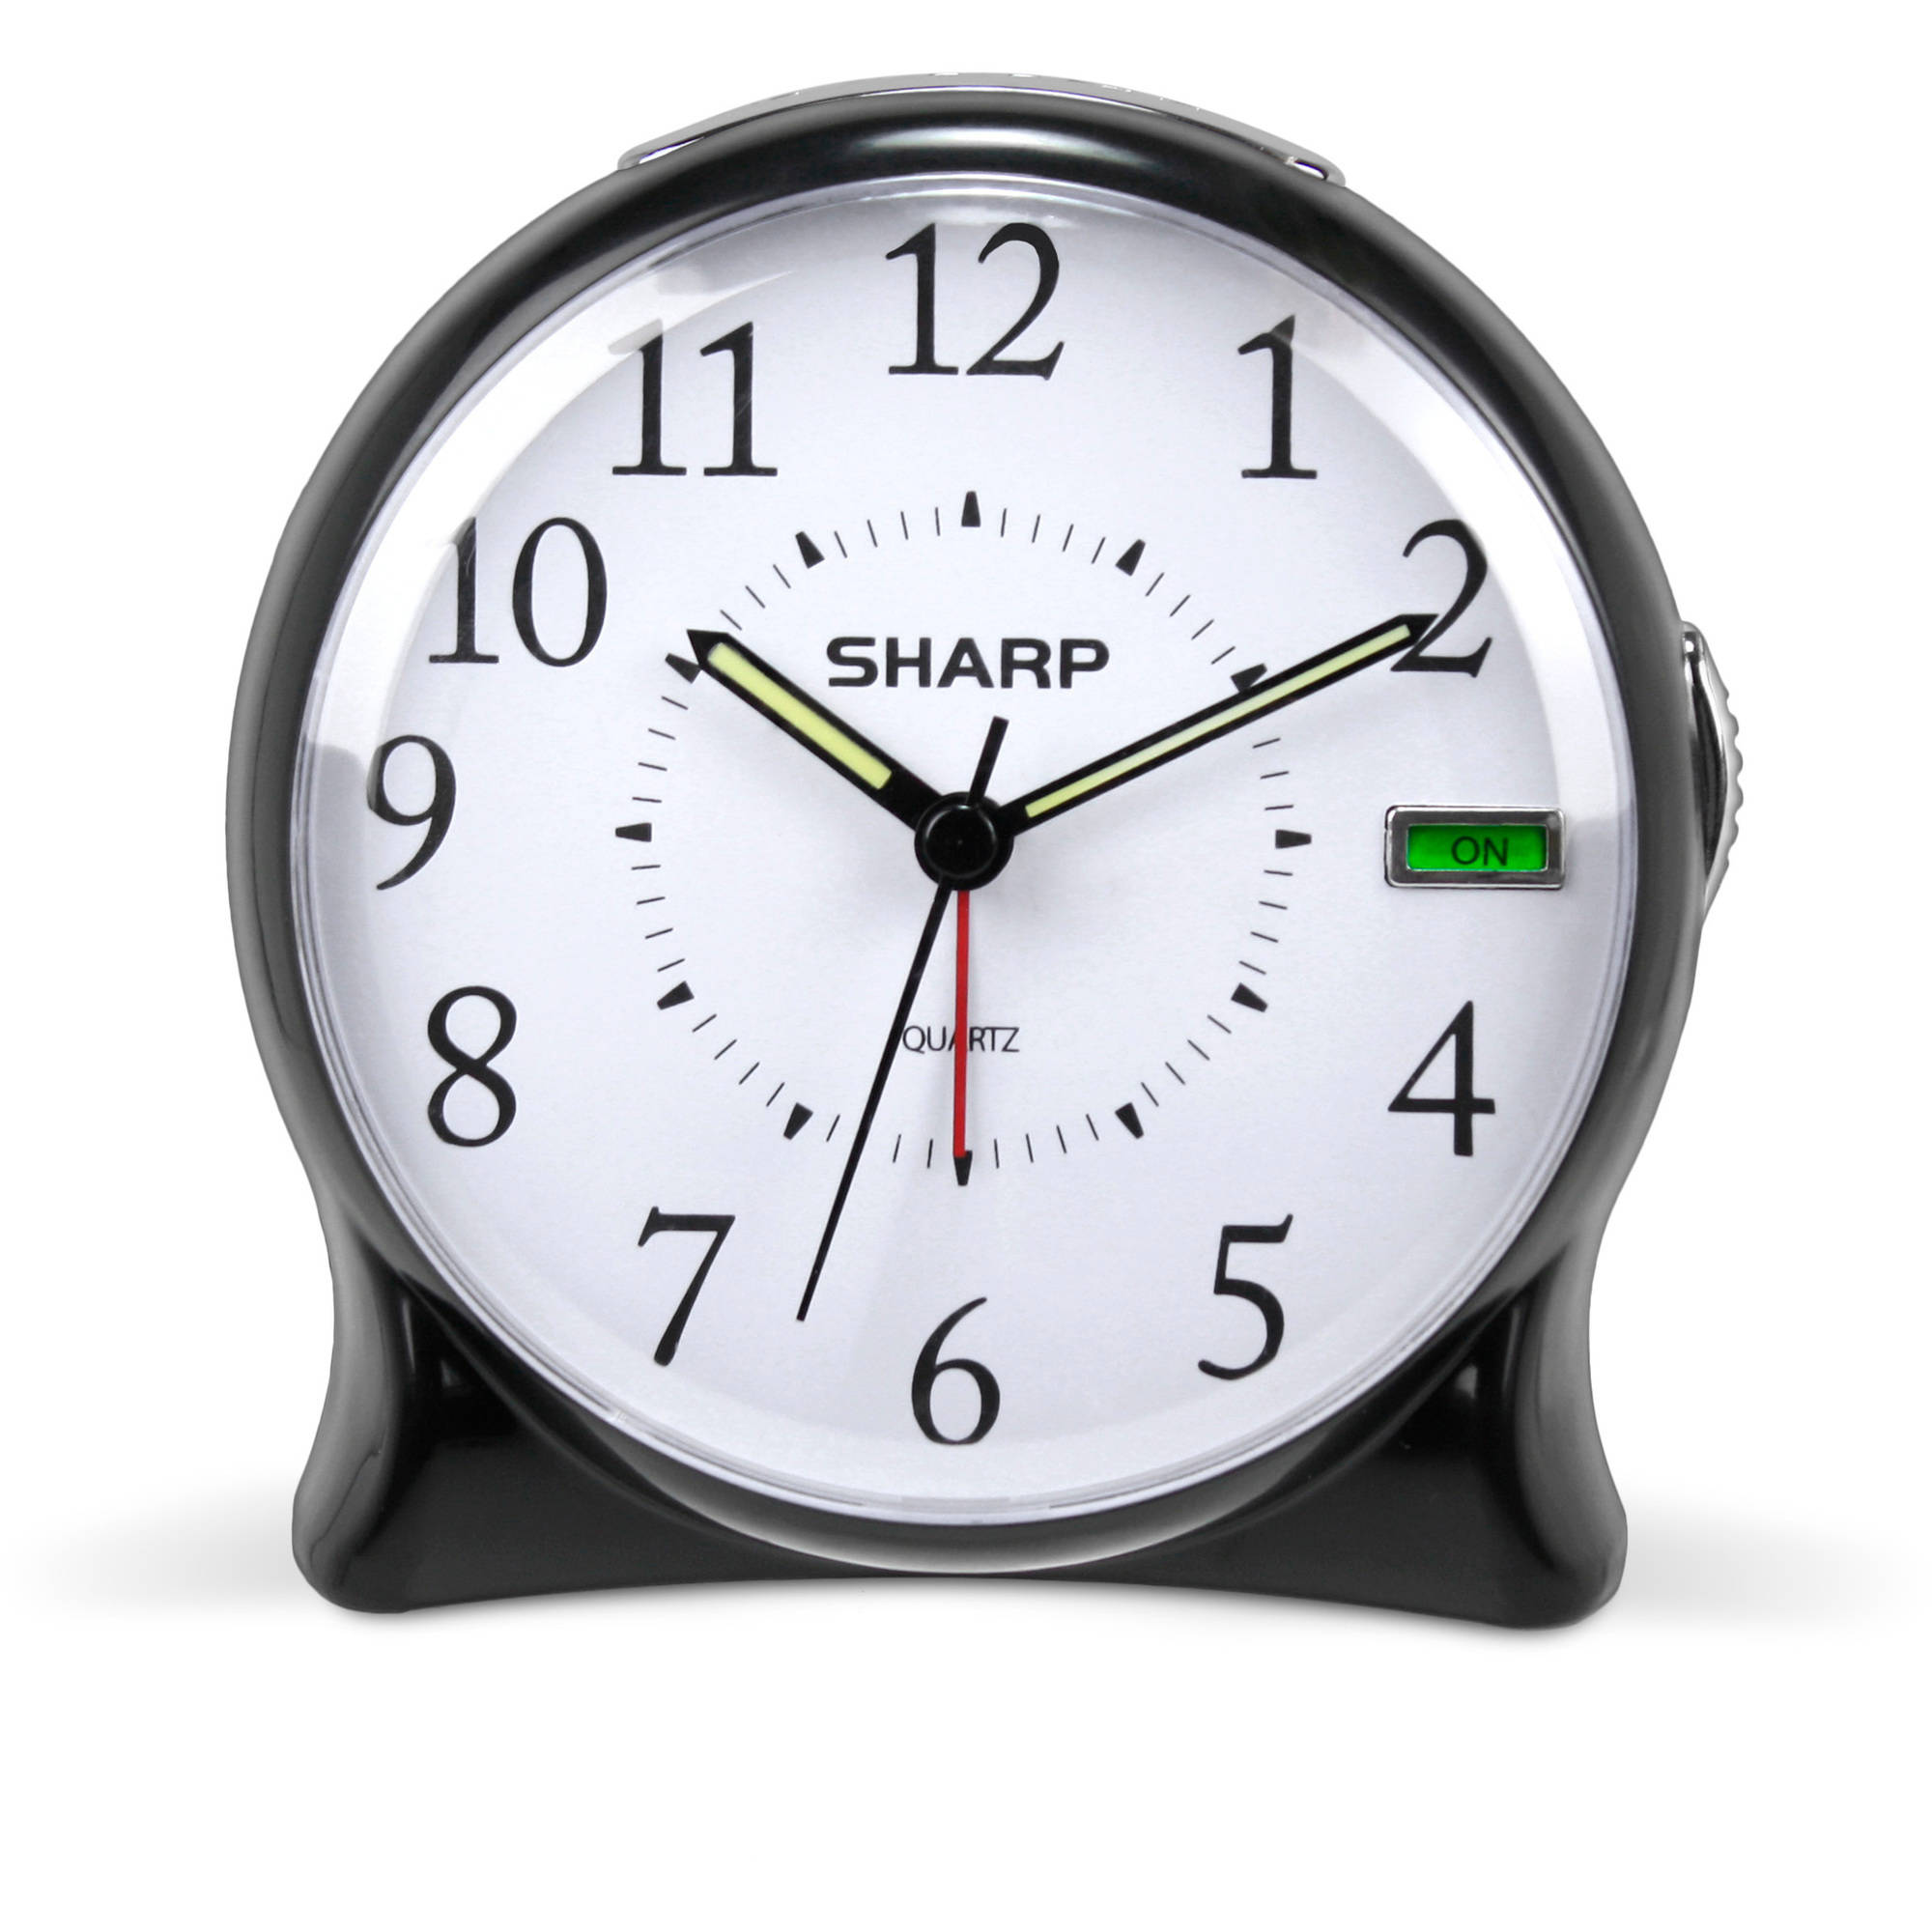 Sharp Quartz Analog Alarm Clock, Black